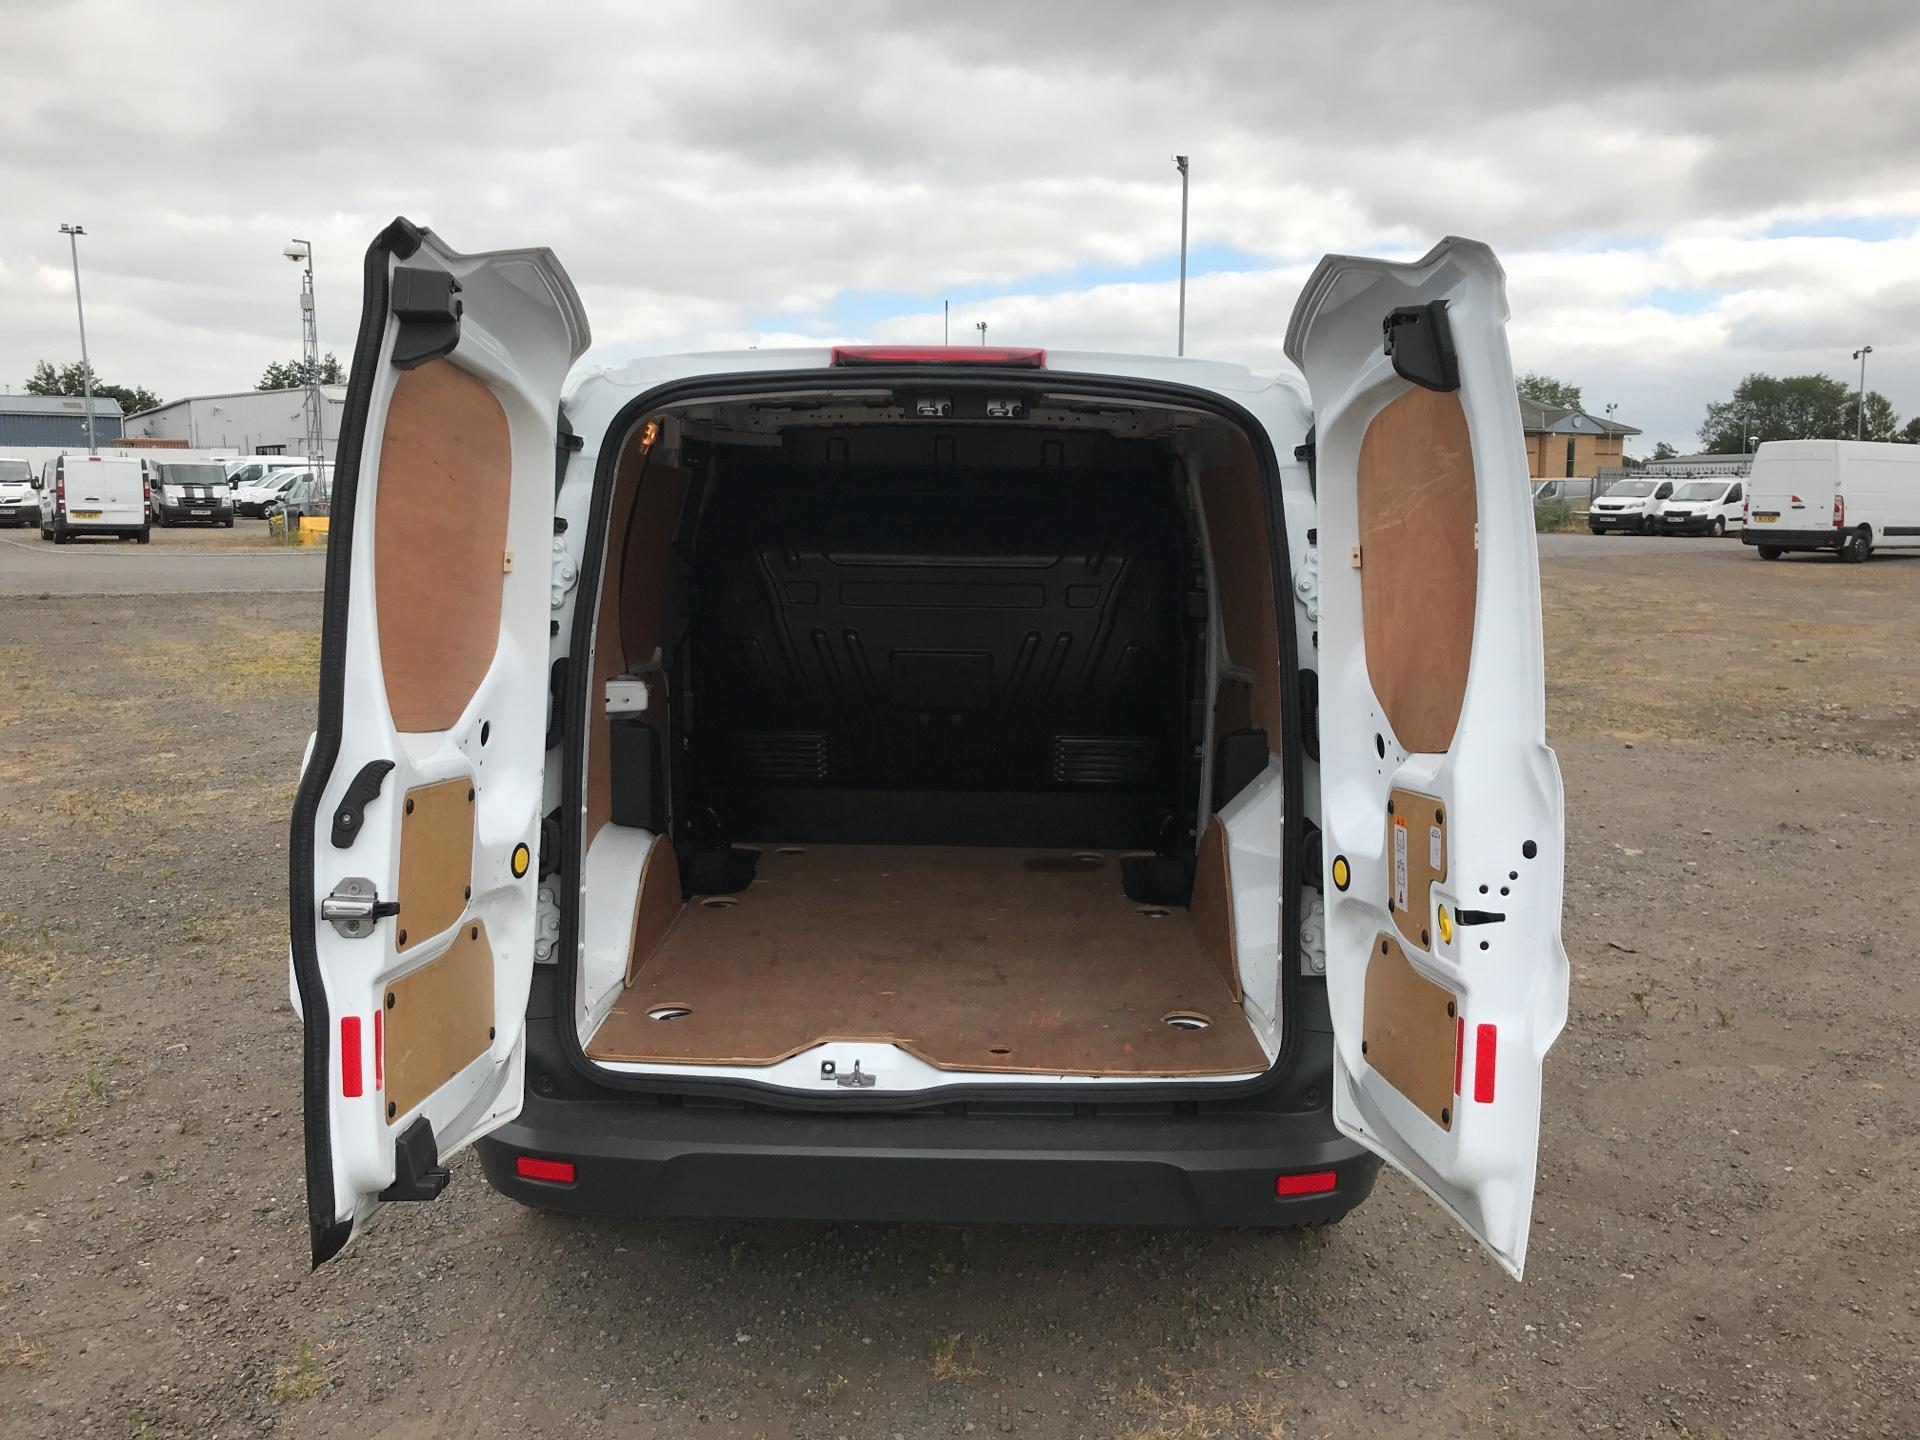 2016 Ford Transit Connect 200 L1 DIESEL 1.6 Tdci 75Ps Van EURO 5 (FN16VCW) Image 15